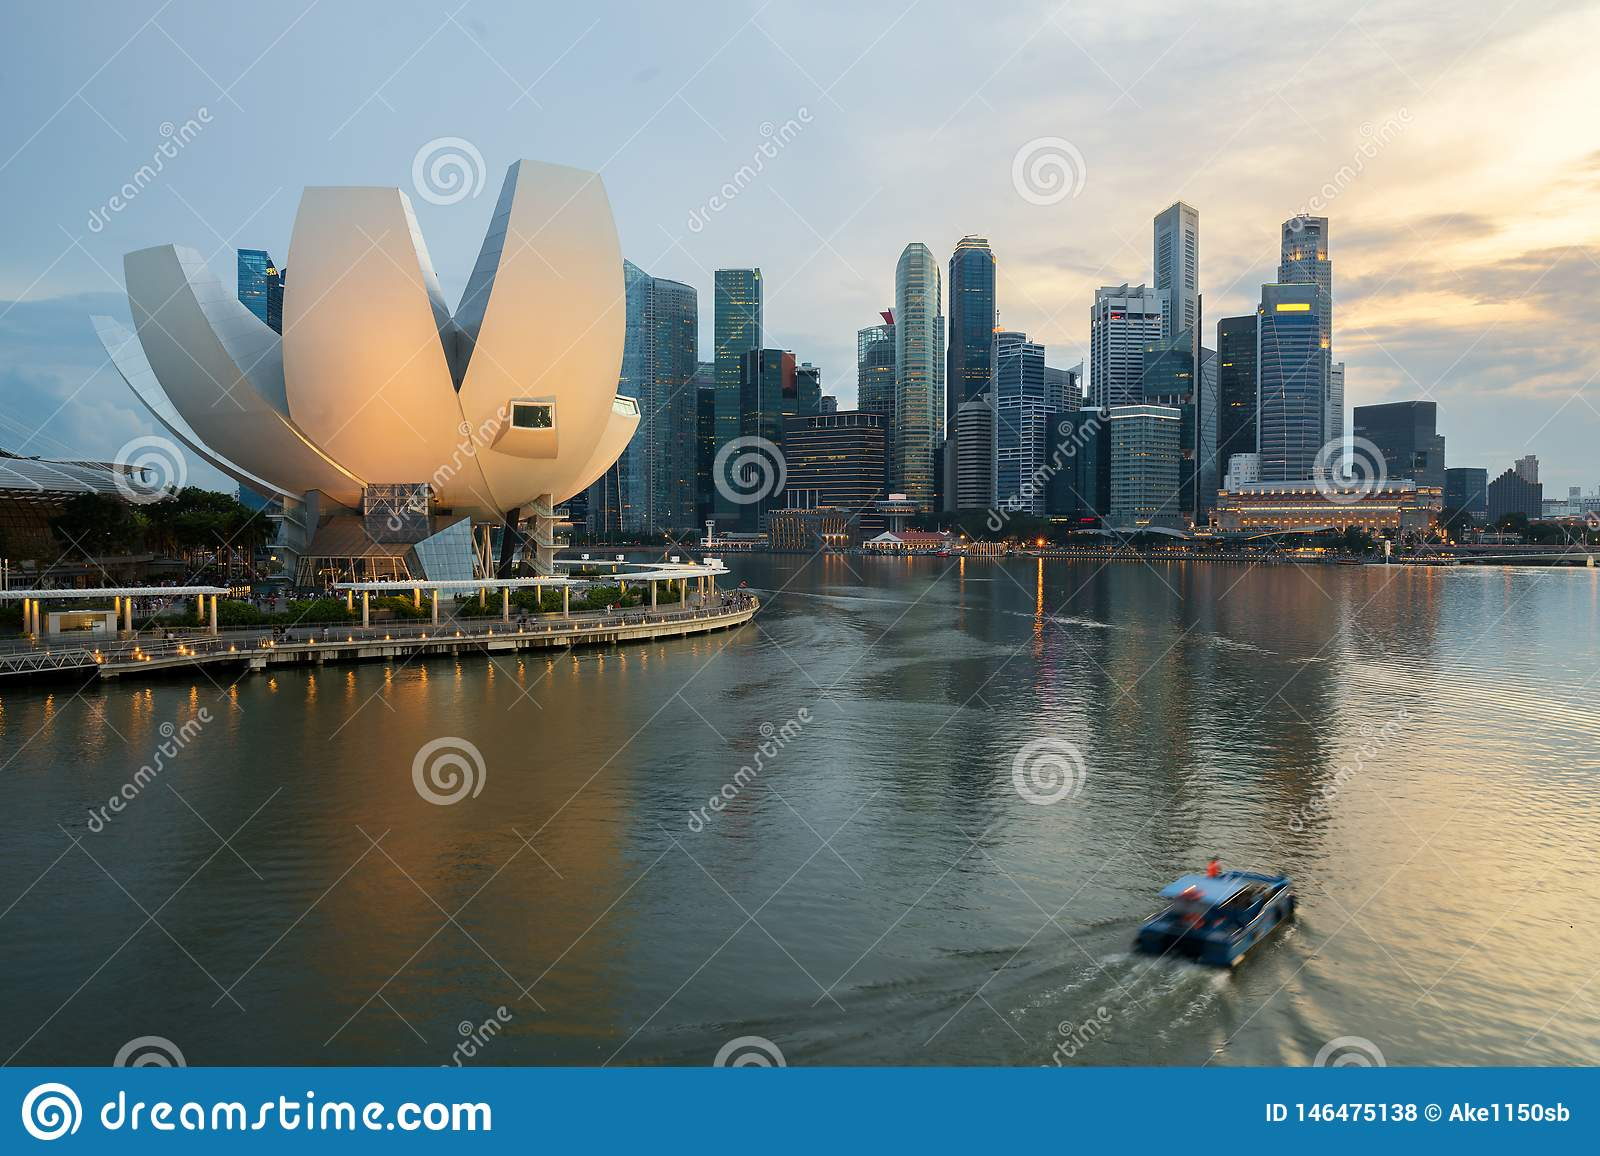 Singapore business district skyline and Singapore skyscraper in night at Marina Bay. Asia